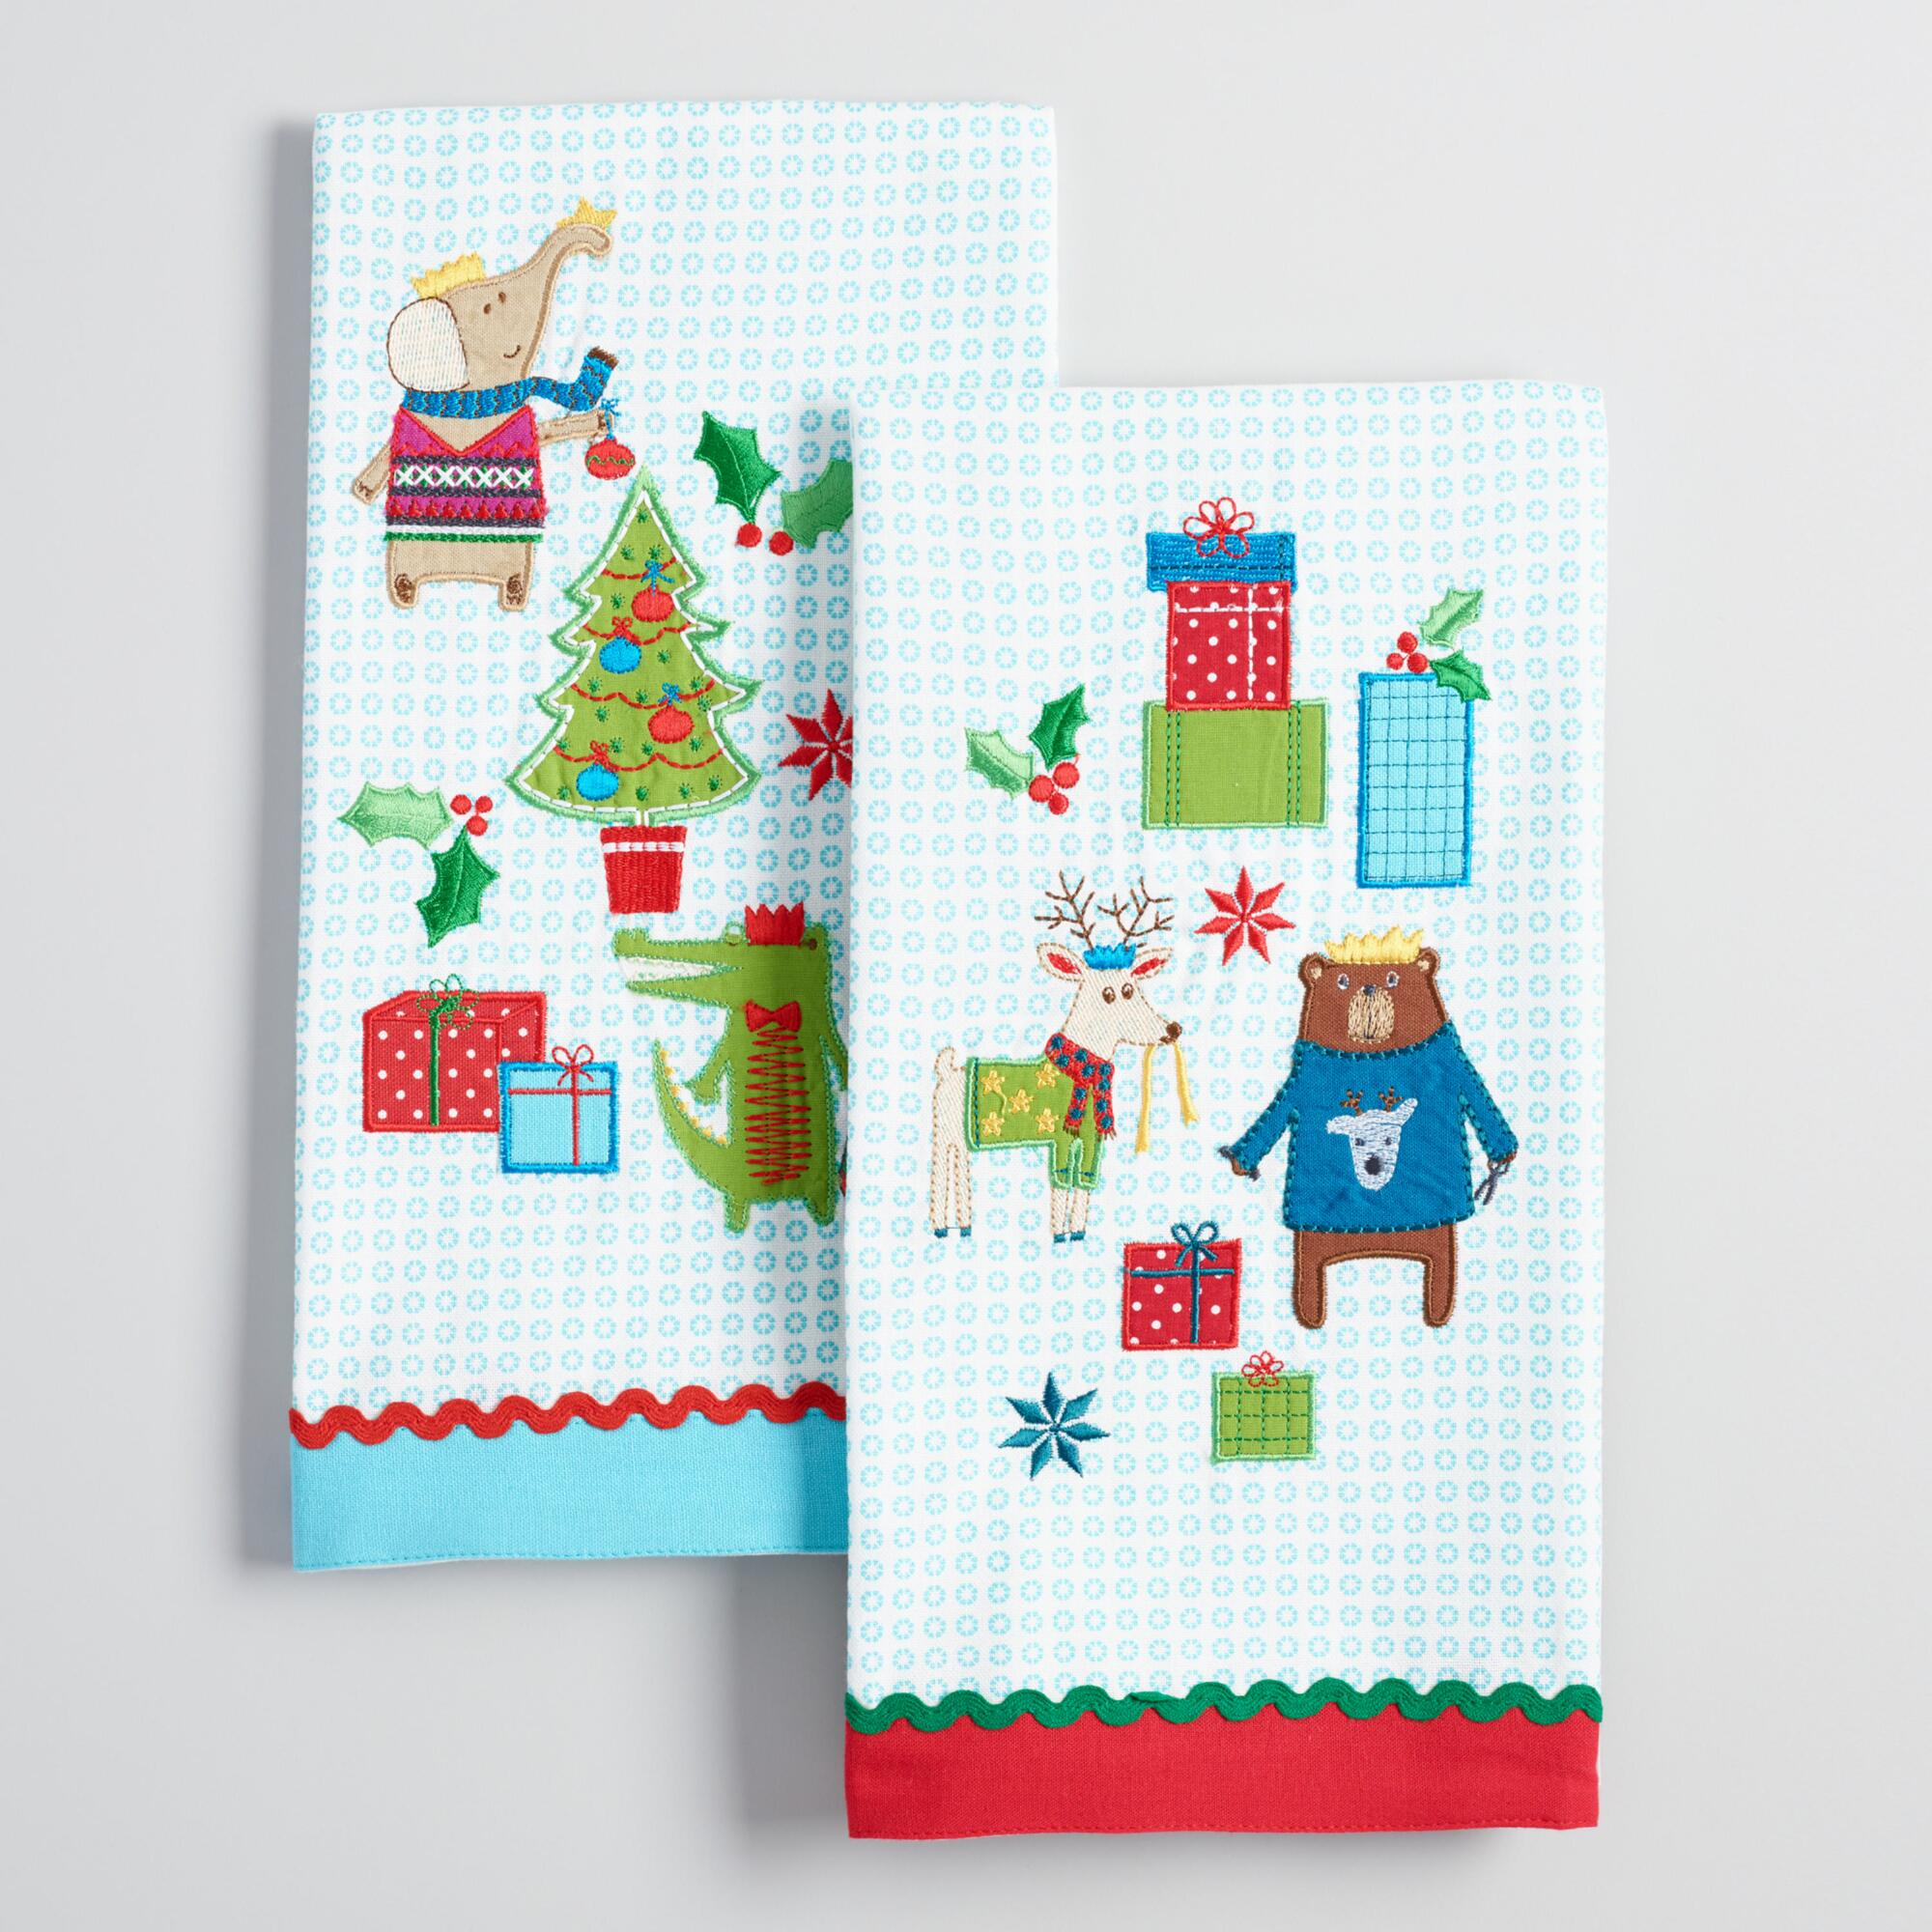 Kitchen Towels Xmas: Embroidered Holiday Animals Kitchen Towels Set Of 2